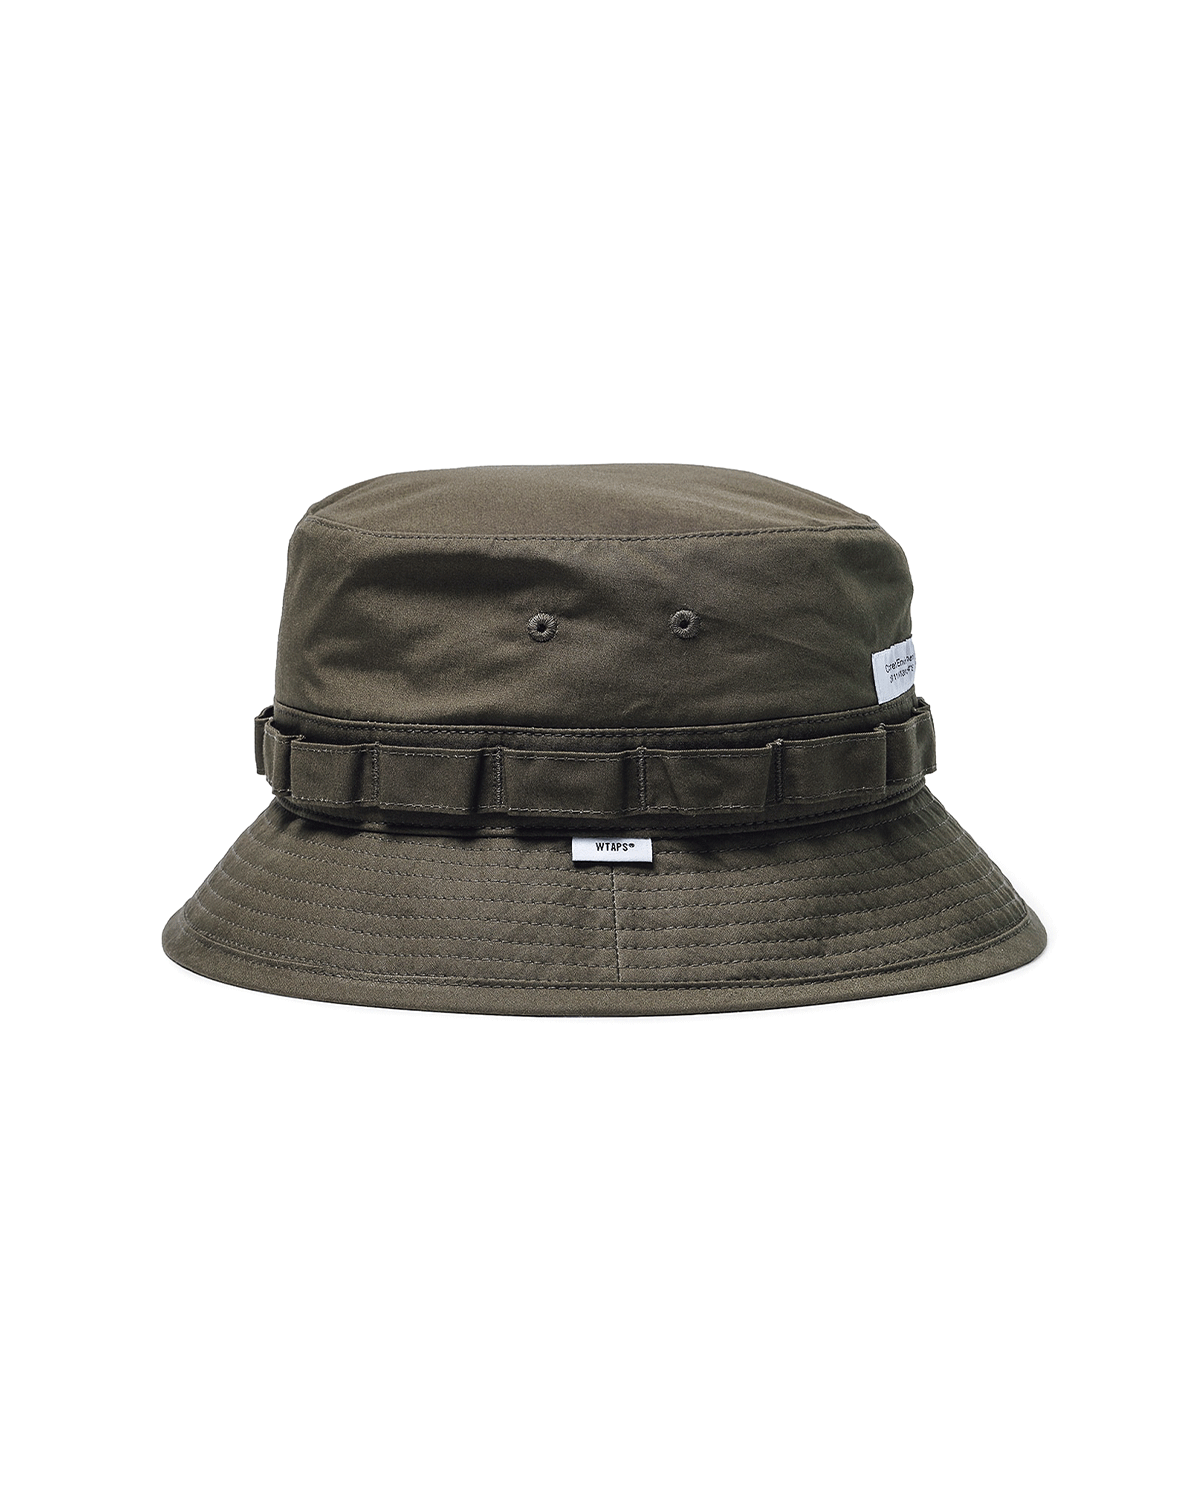 Jungle Hat Olive Drab